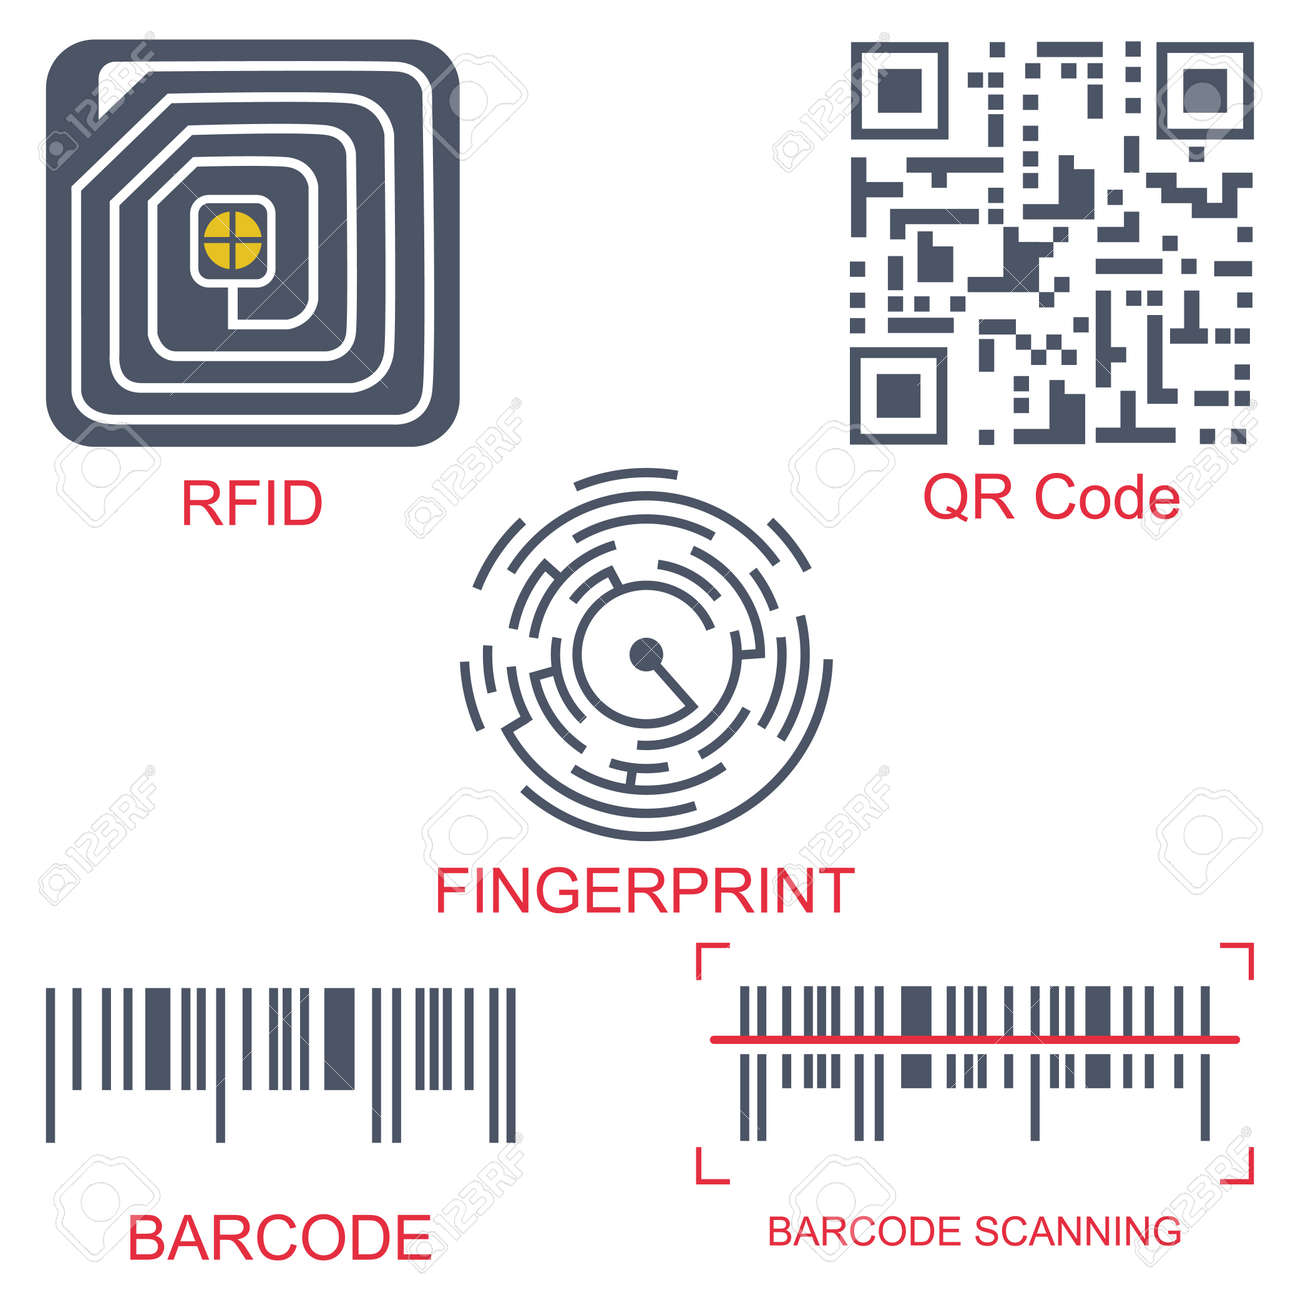 Rfid tag, qr code, fingerprint and barcode vector flat icon set isolated on a white background. Radio-frequency identification and scanning technology. - 111278985